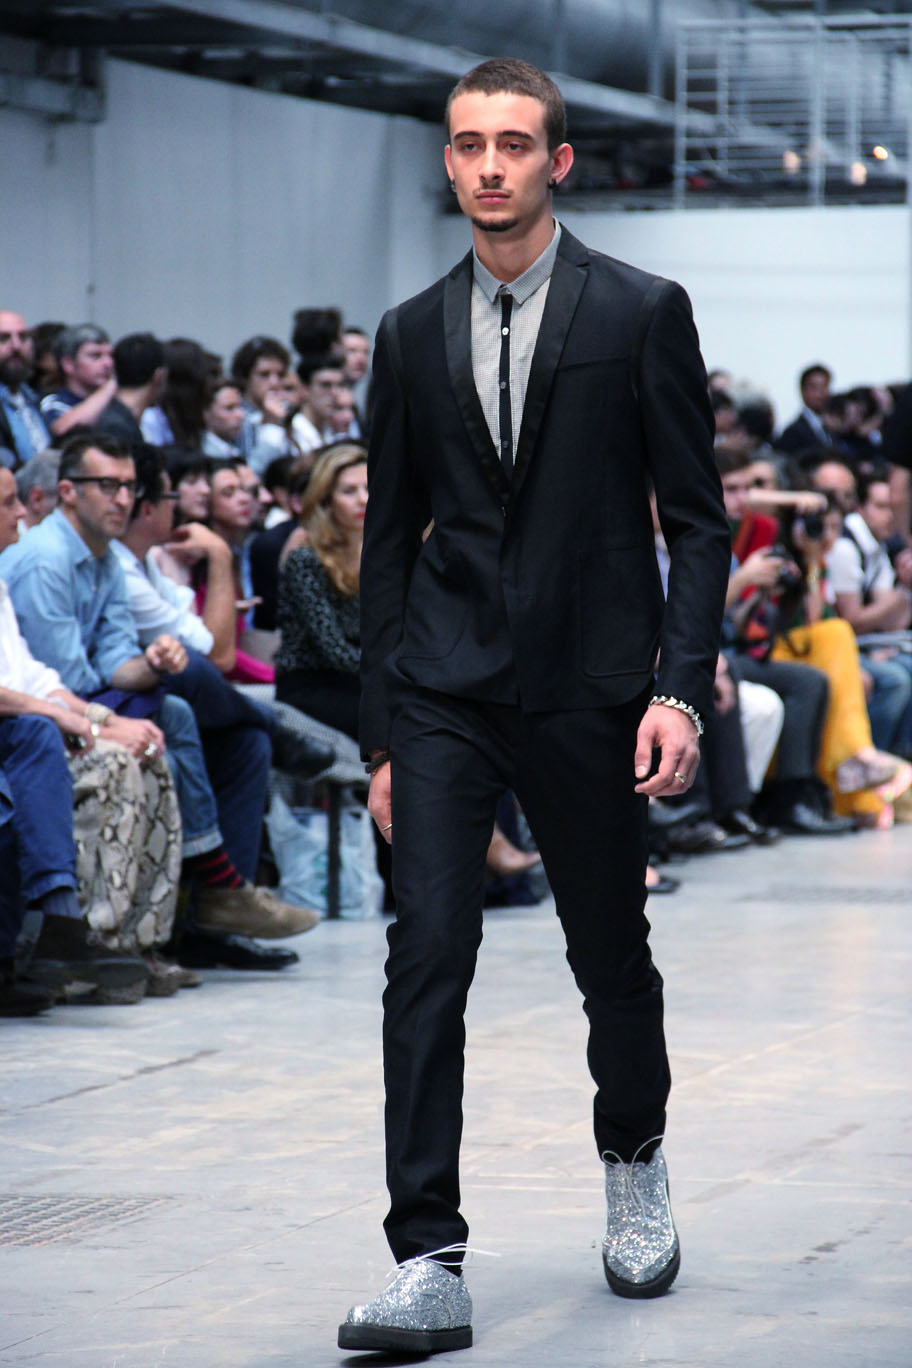 costume-national-homme-milano-fashion-week-2012-spring-summer-fashion-show-catwalk